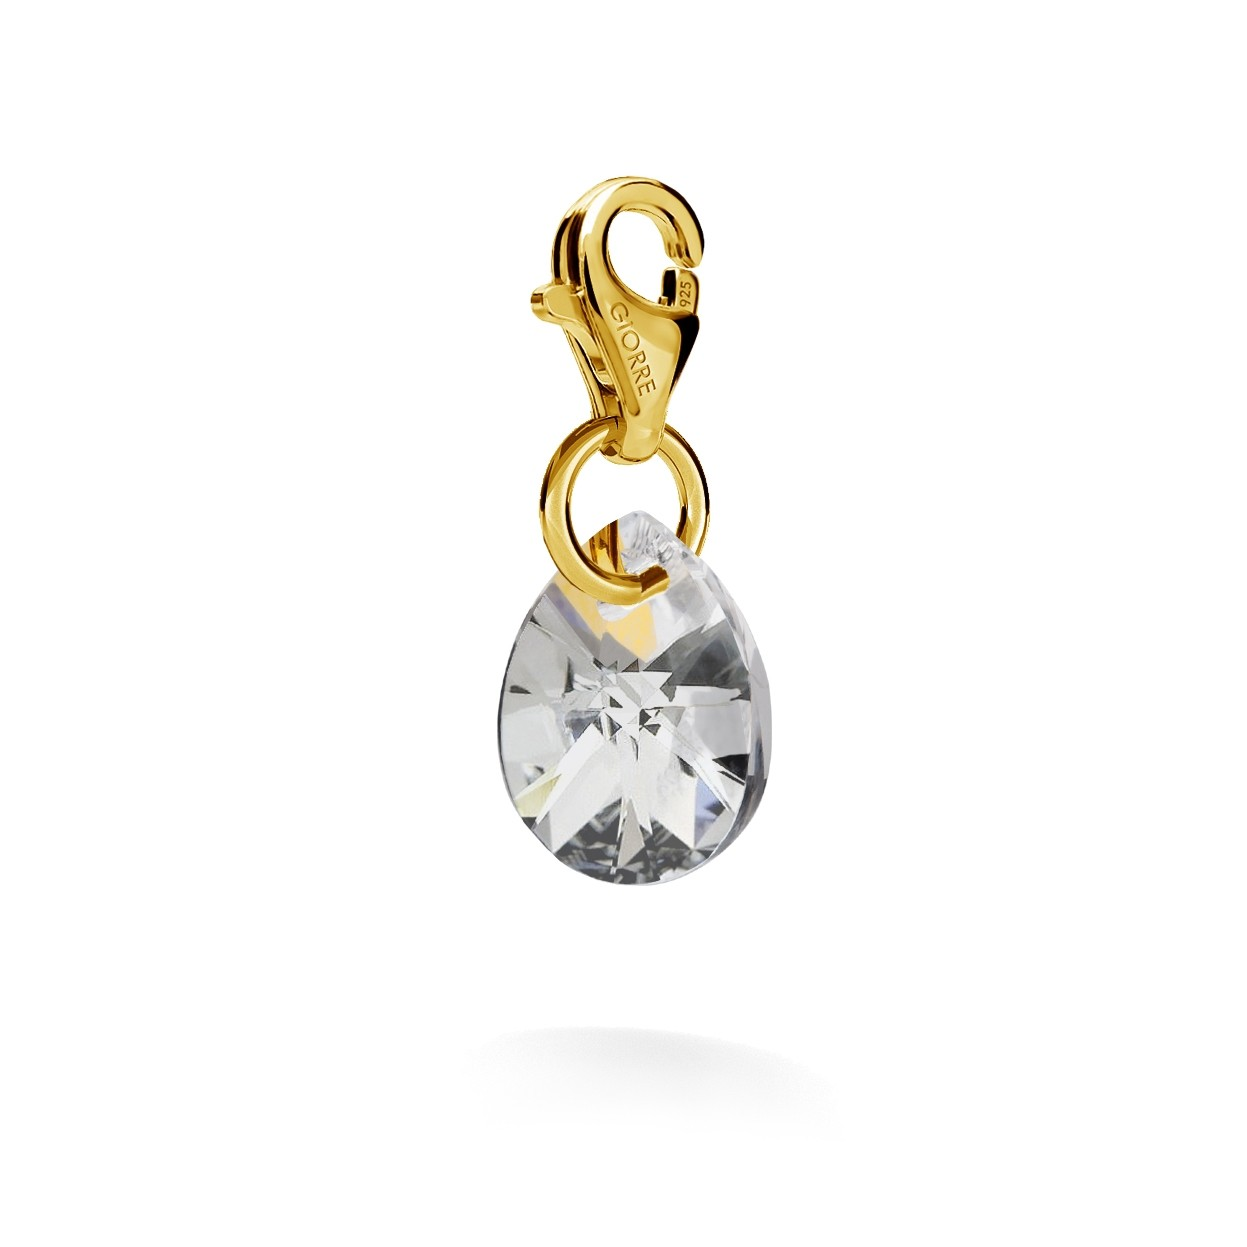 CHARMS 51, SWAROVSKI 6128 MM 12 CRYSTAL, STERLING SILVER (925) RHODIUM OR GOLD PLATED